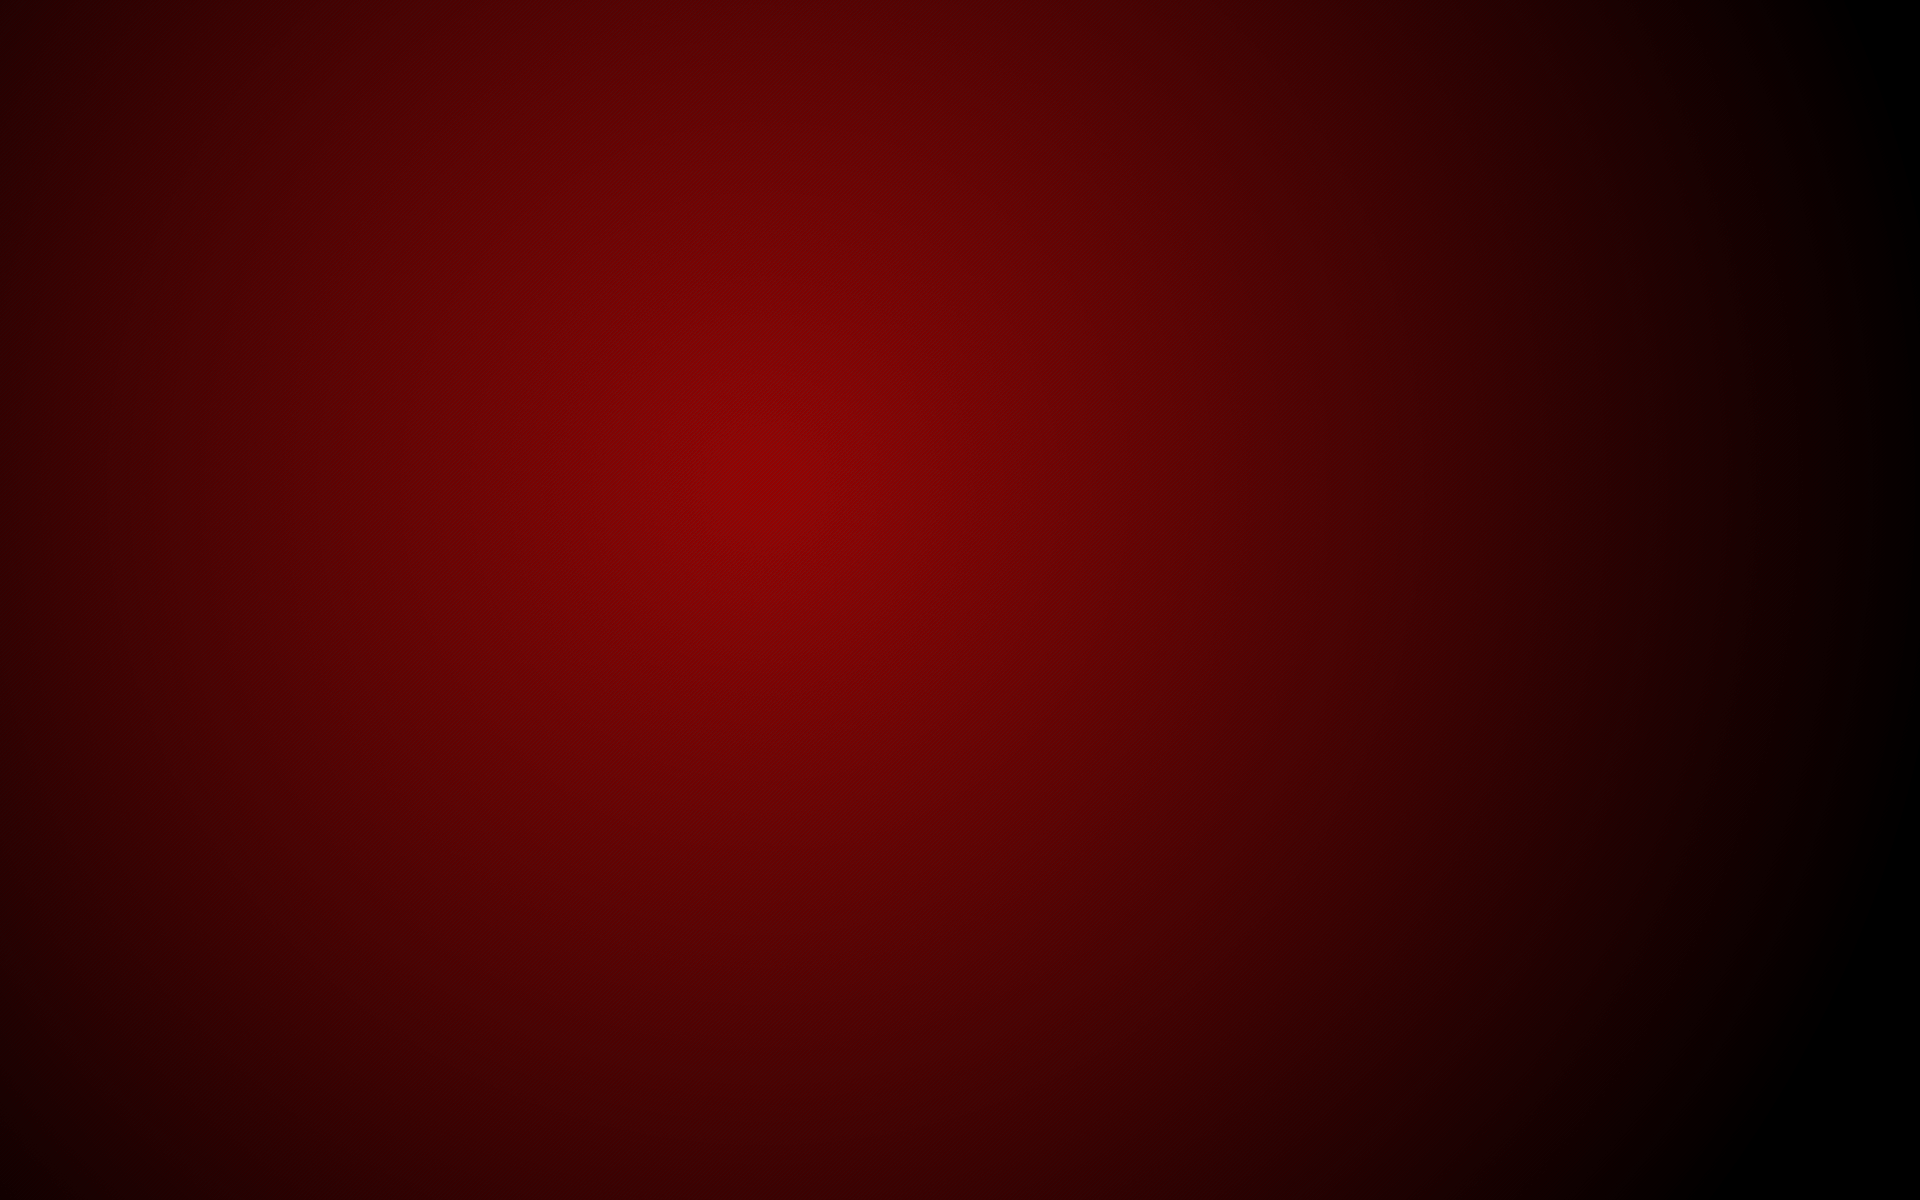 red gradient wallpapers top free red gradient backgrounds wallpaperaccess red gradient wallpapers top free red